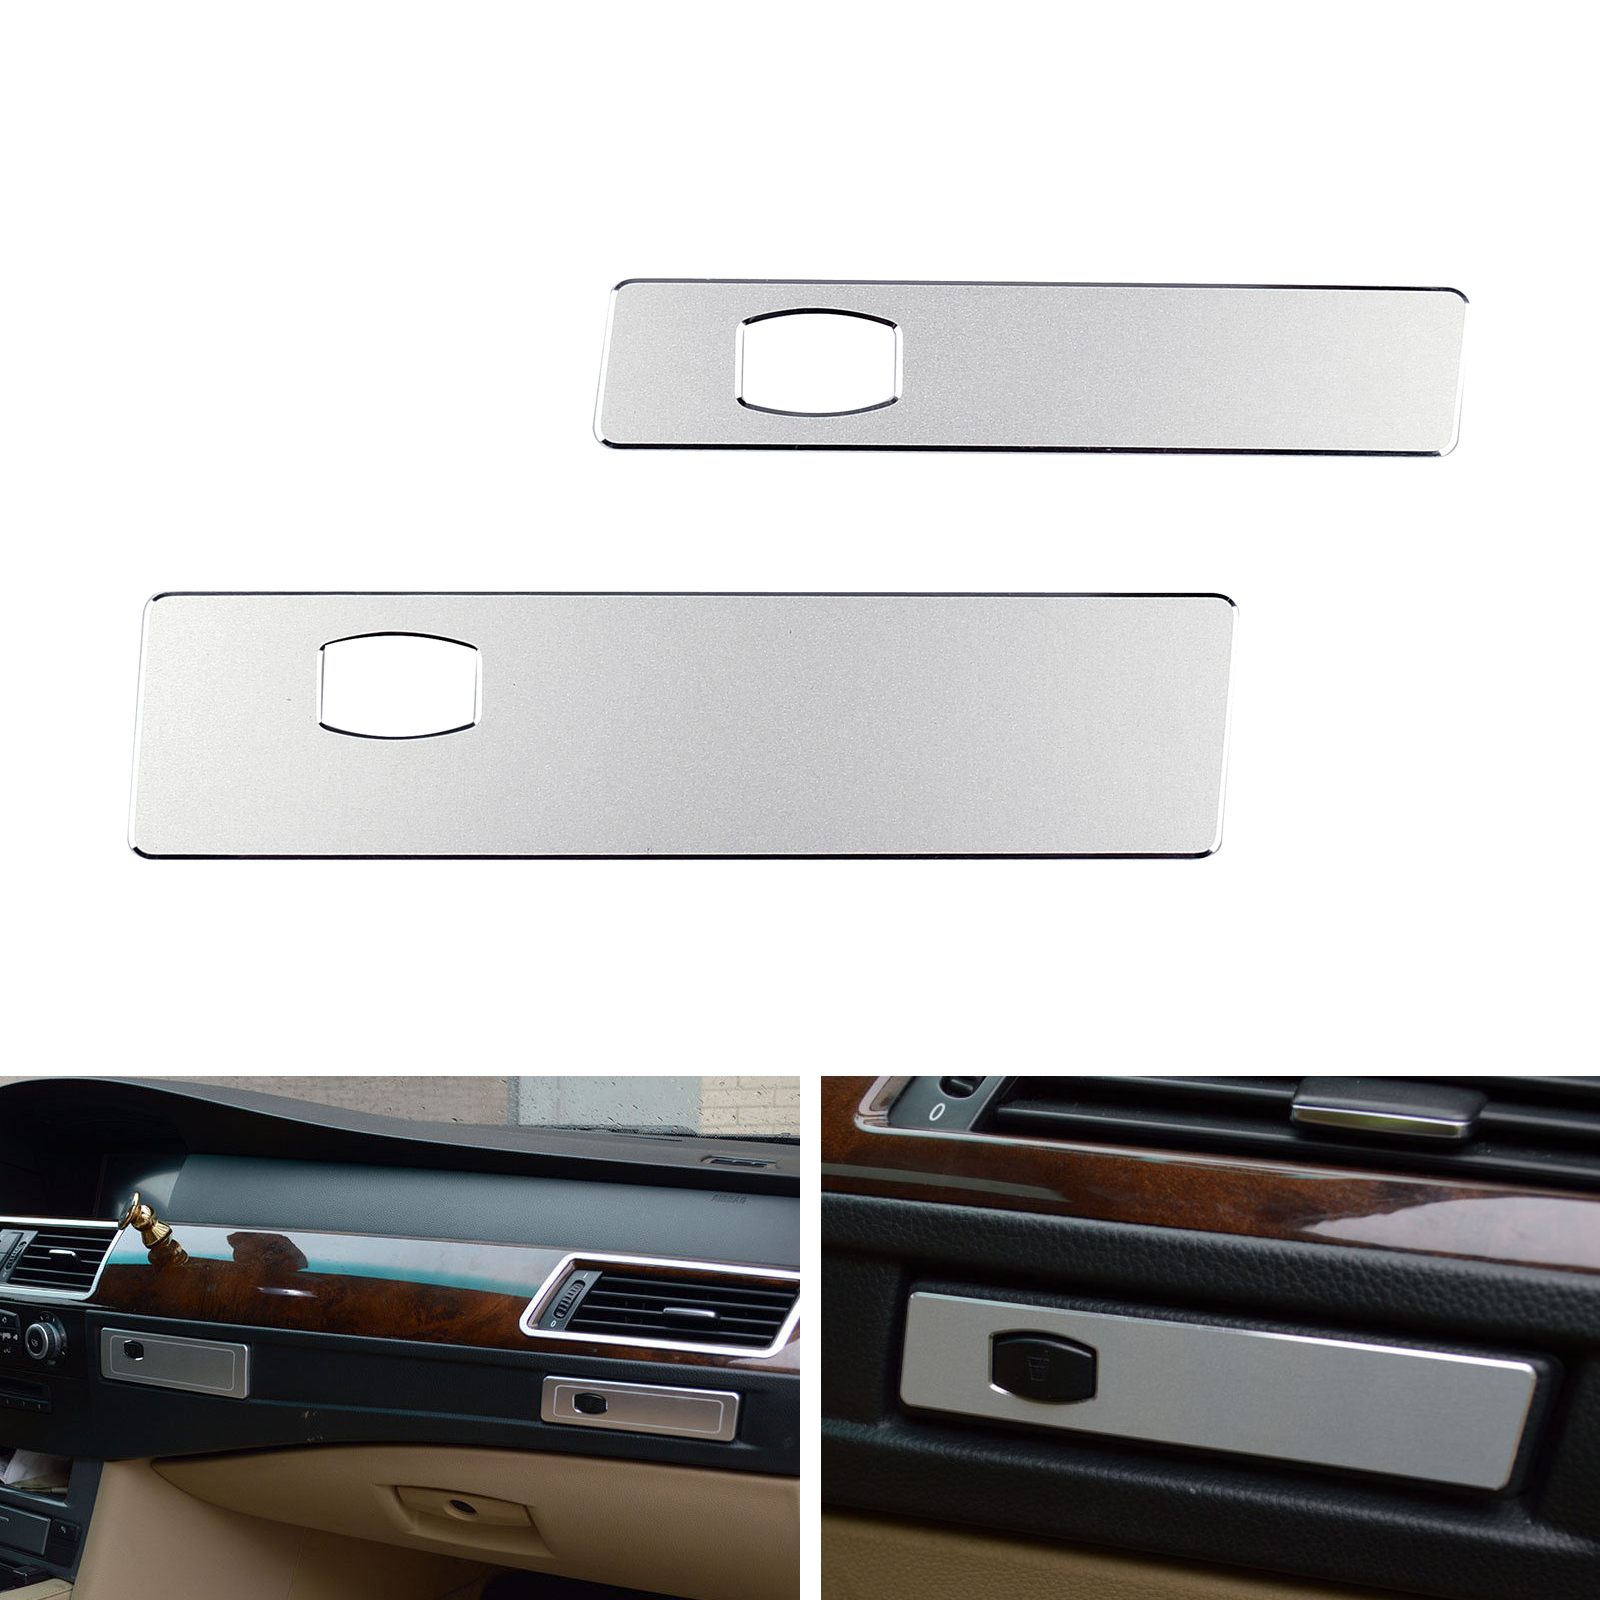 New For BMW E60 5 Series 2005-2010 Side Air Conditioning Outlet Frame Cover Trim